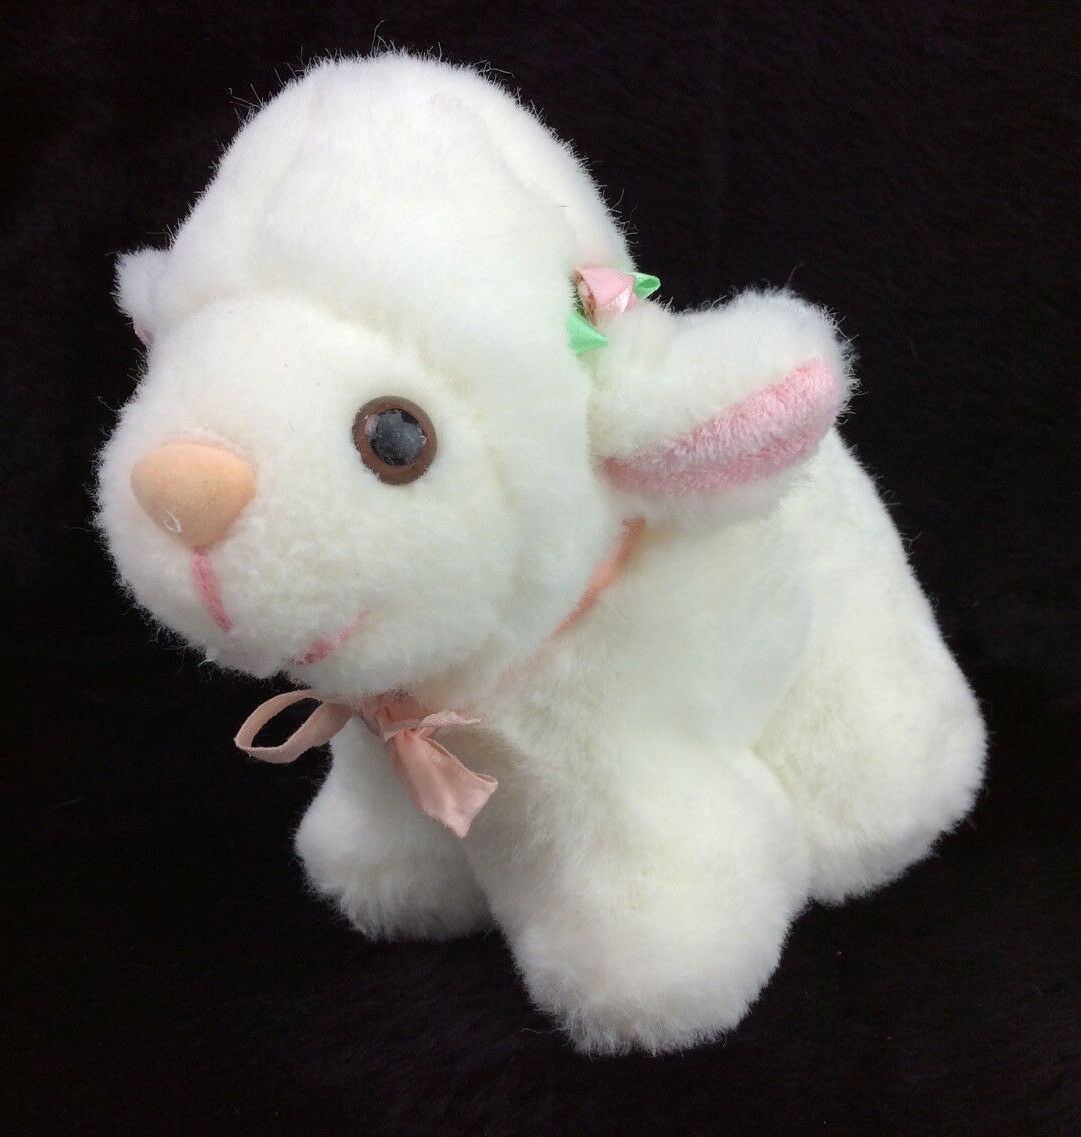 VTG Lamb Sheep White Flower Pink Ears Musical Plush Stuffed Animal 7